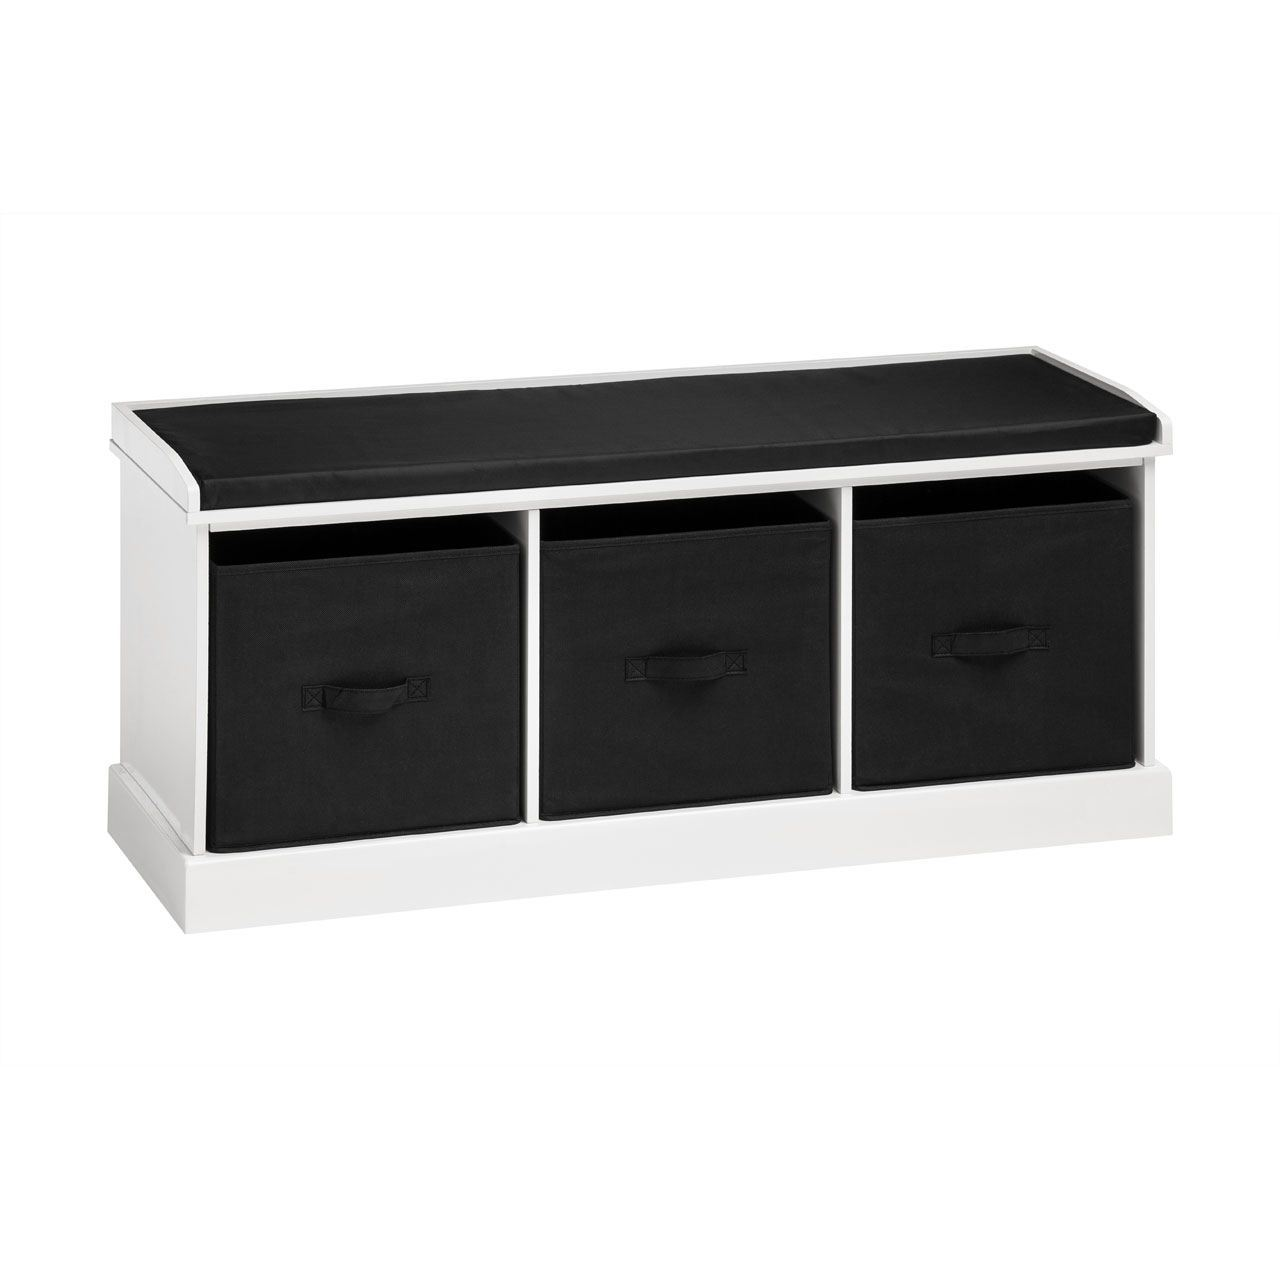 Storage Bench Seat With 3 Box Drawers White Black For Your Home Ebay